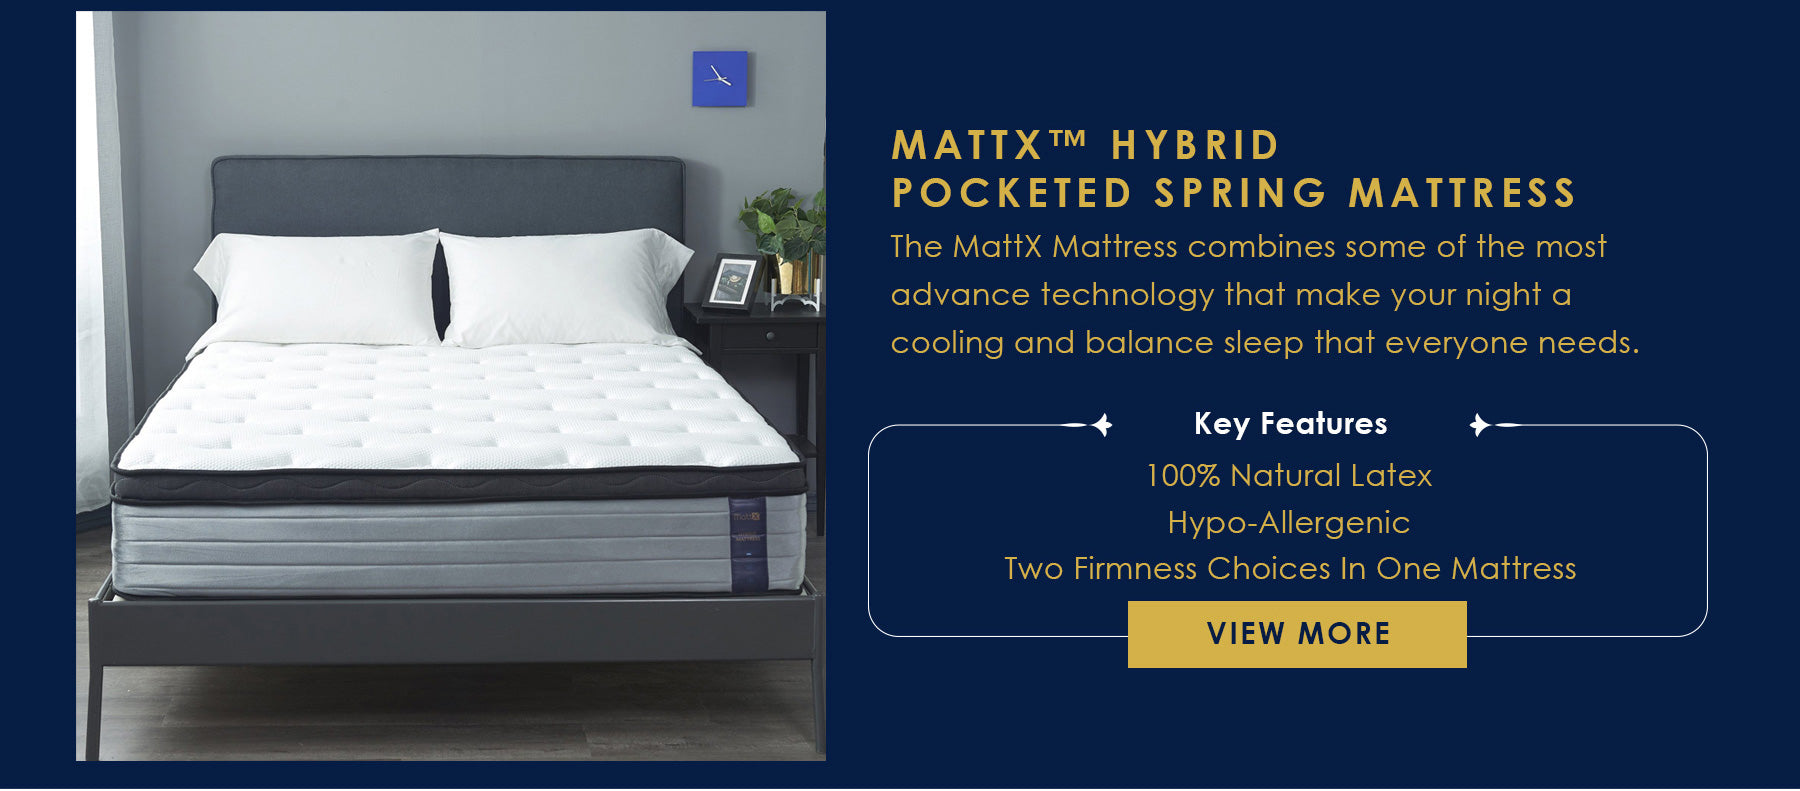 MattX™ Hybrid Pocketed Spring Mattress